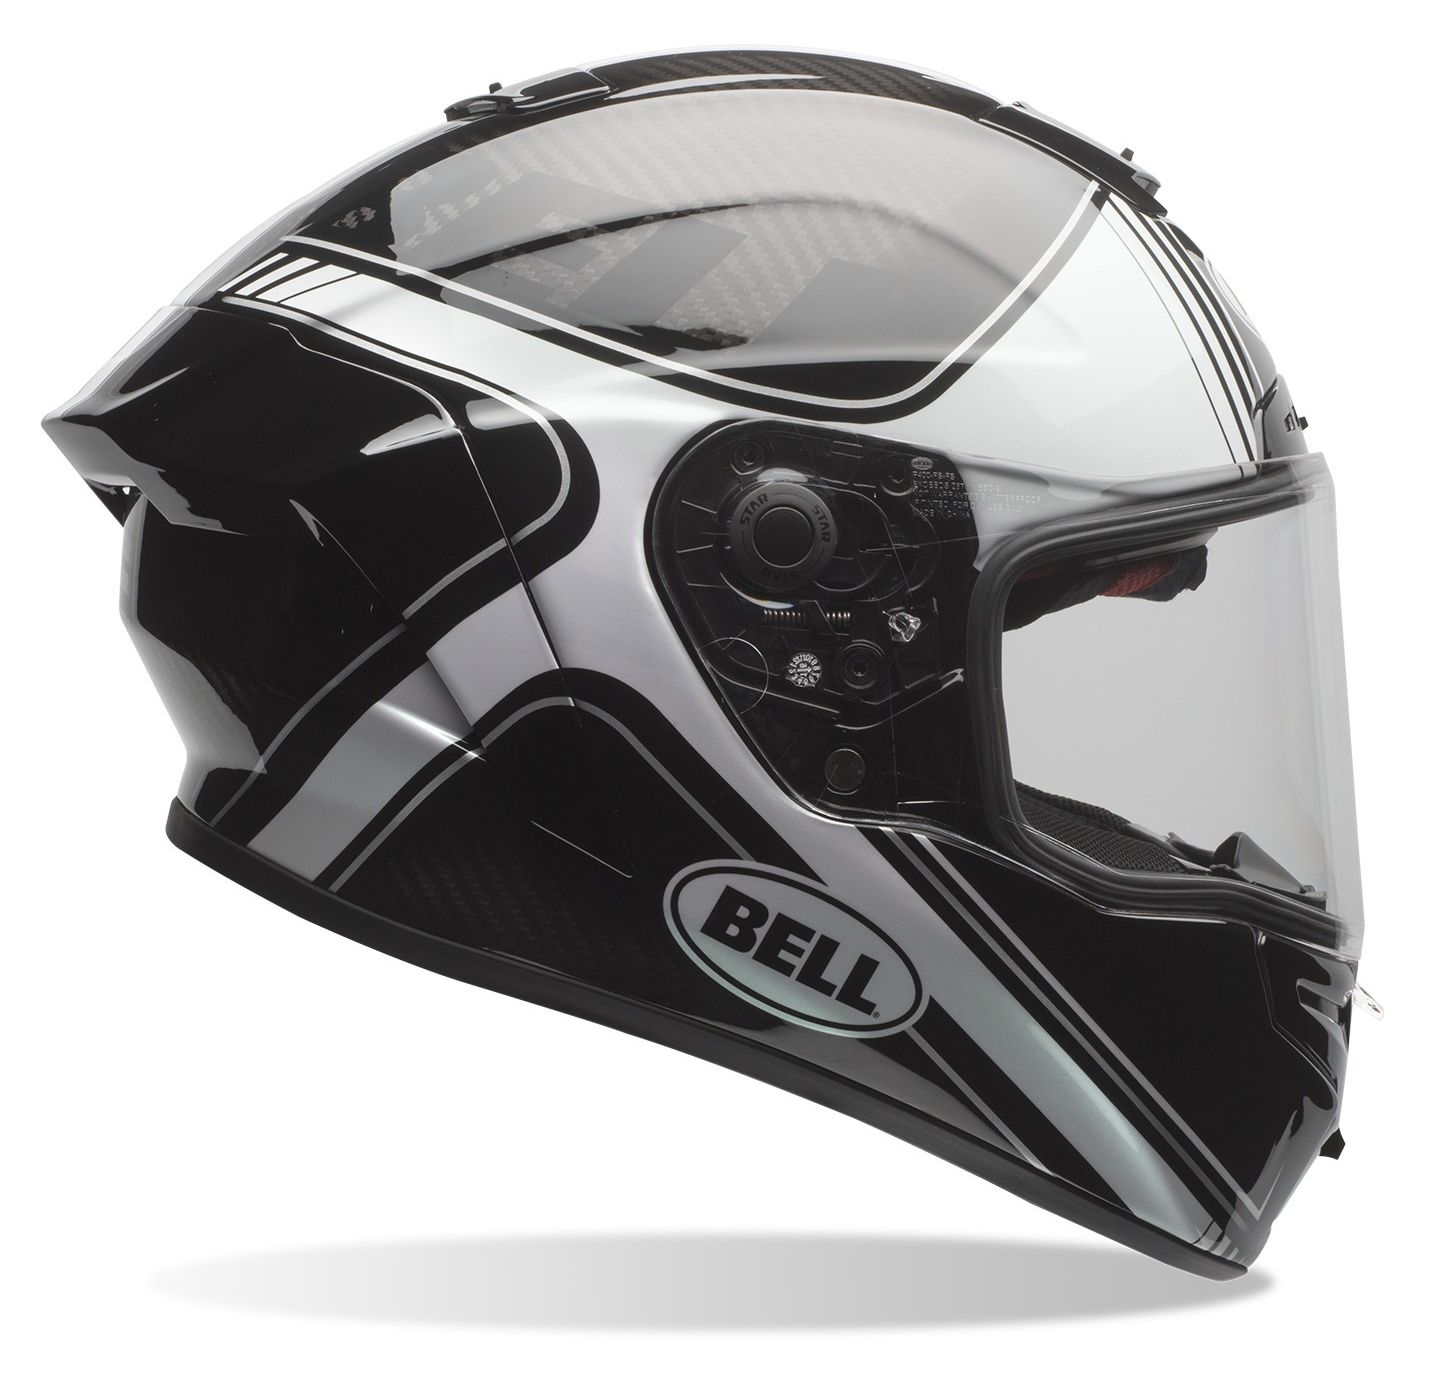 3e92916d Bell Race Star Tracer Helmet (Size XS only) | 40% ($299.96) Off! - RevZilla